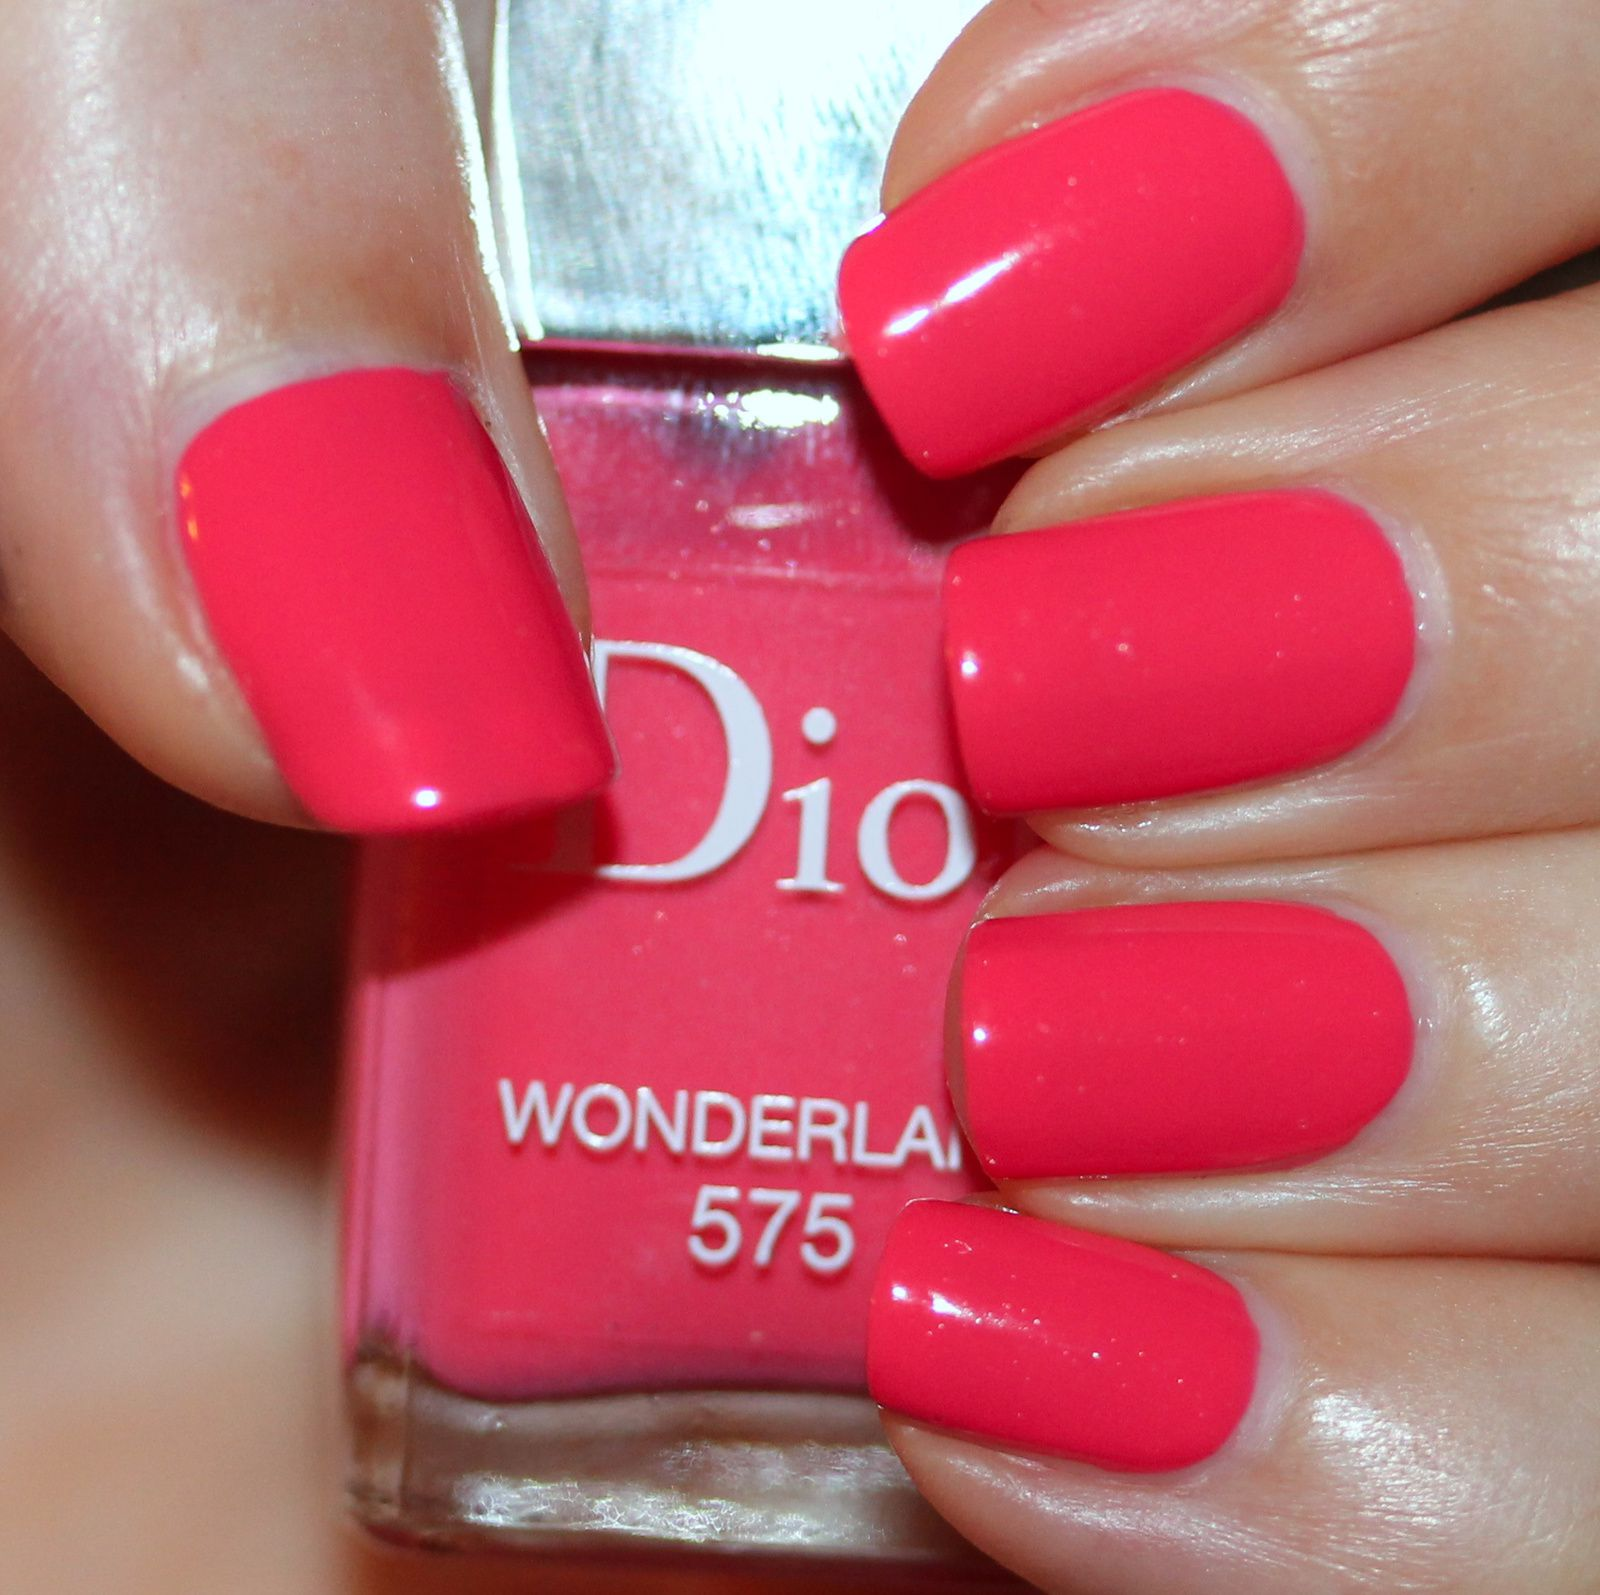 Essie Protein Base Coat / Dior Wonderland / Poshe Top Coat